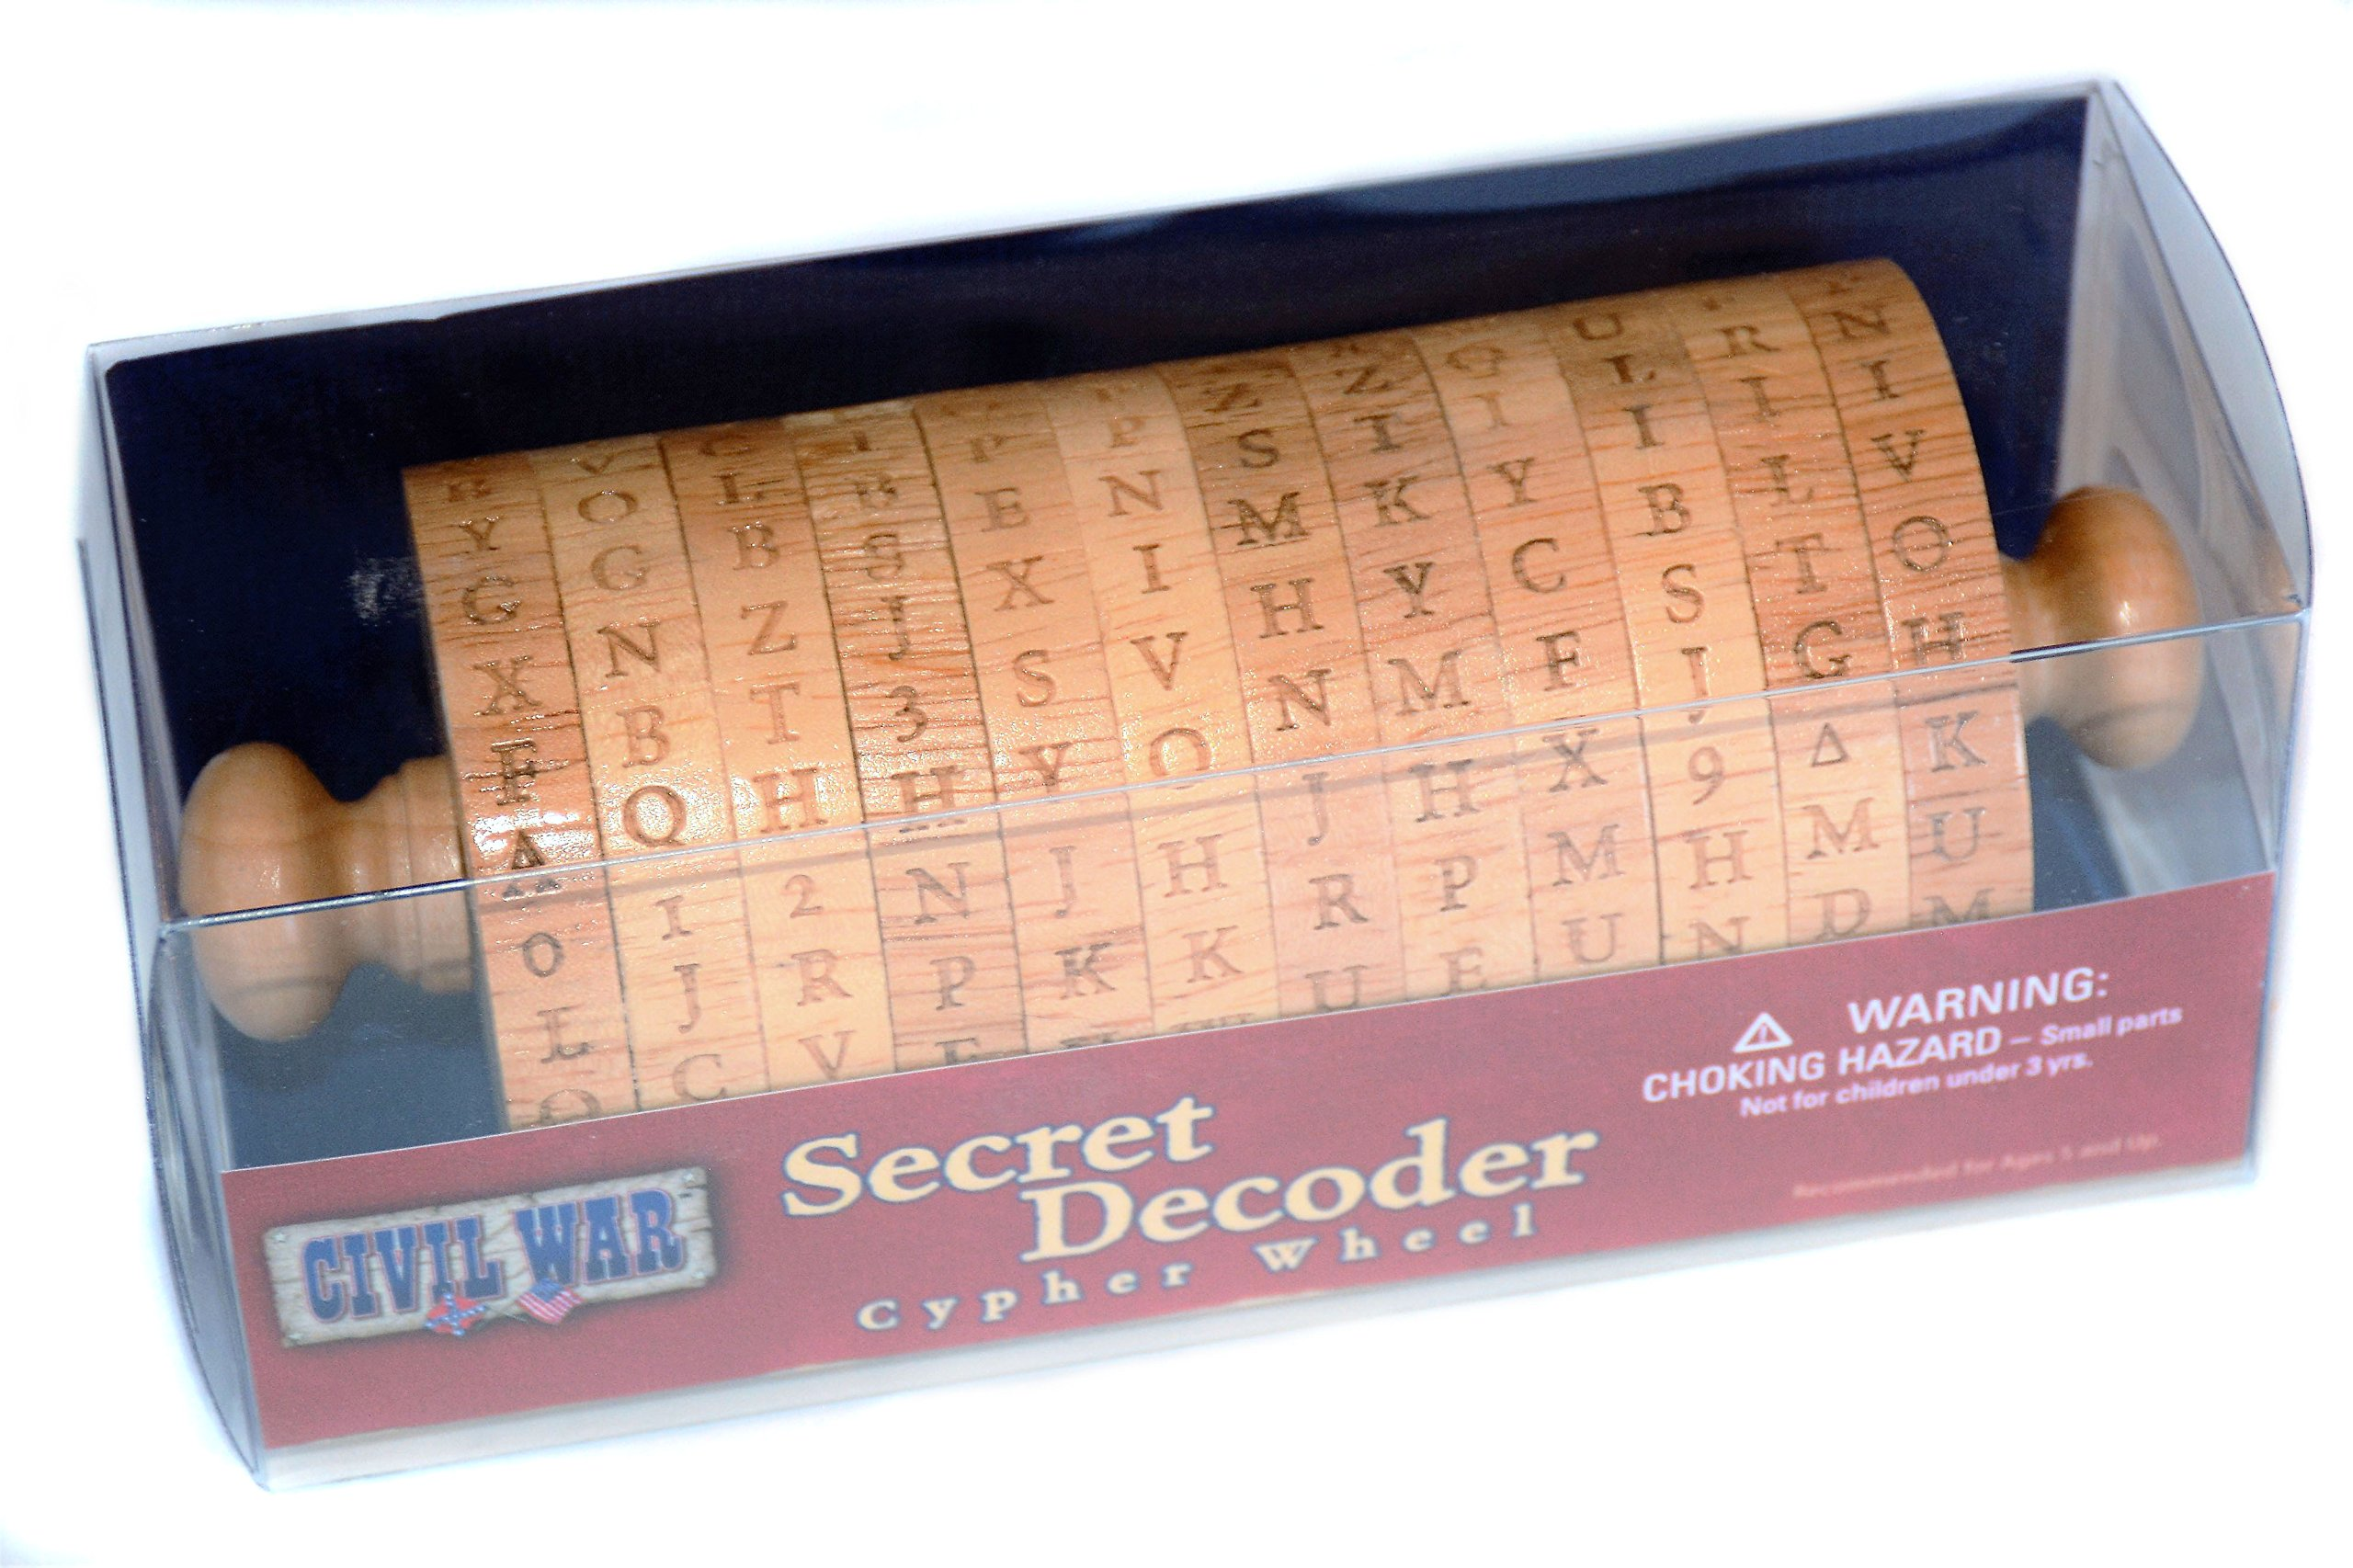 Genuine Cipher Wheel Spy Decoder Educational Historical Replica to Encrypt and Decode Secret Messages and Passwords for a Detective or Spy by Civil War